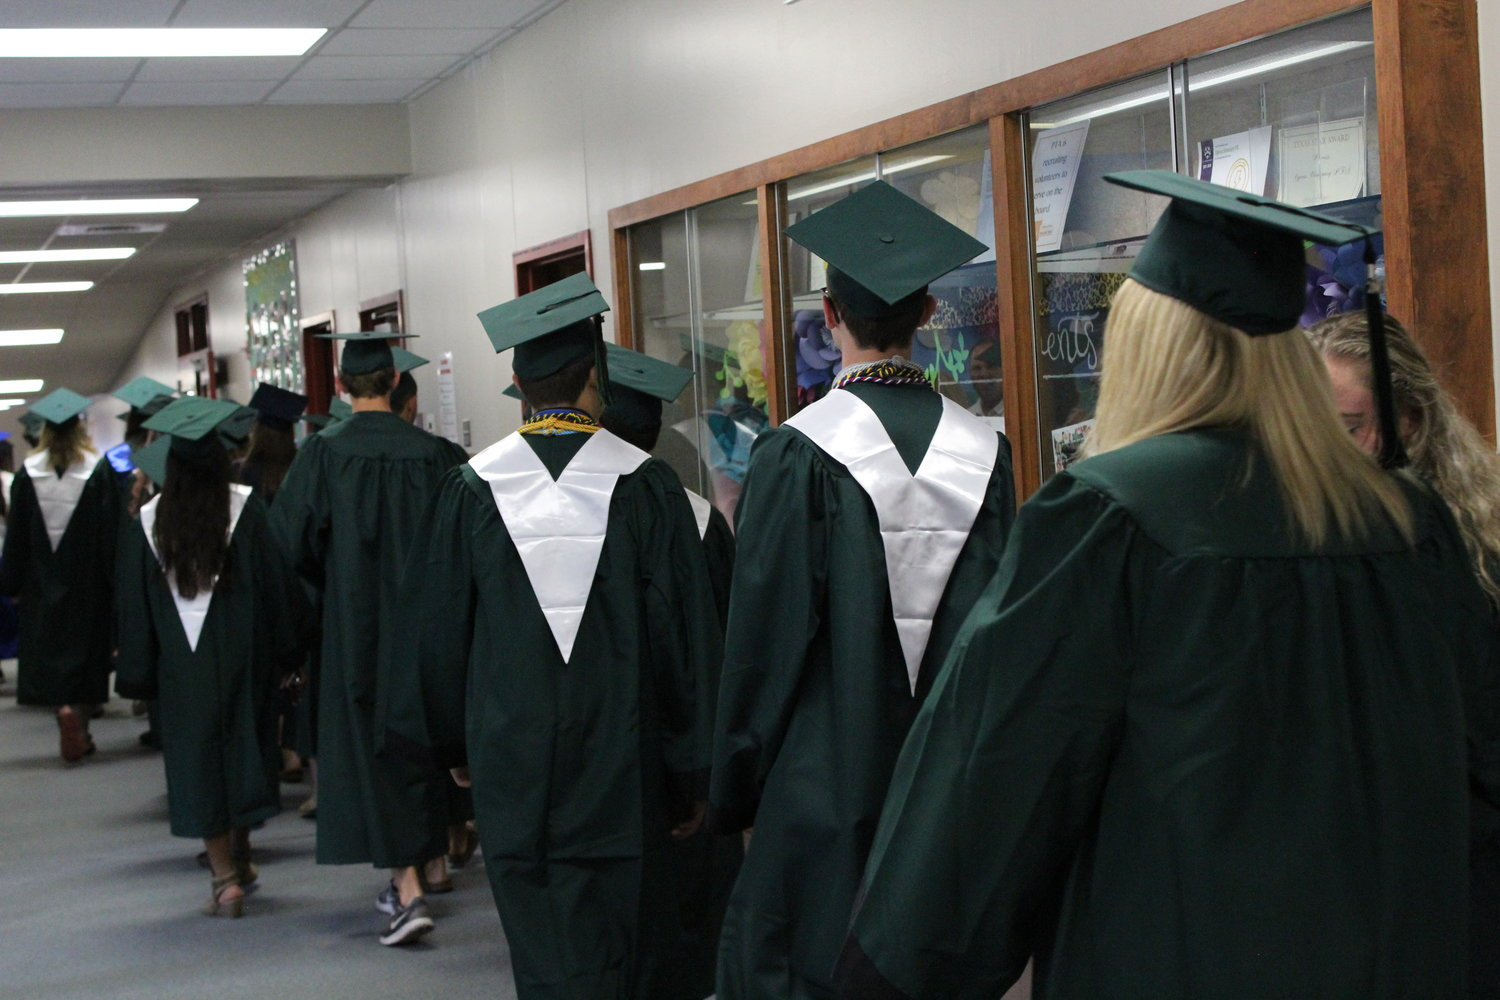 Graduating seniors from Cedar Park High School begin their walk to high-five Cypress Elementary School students on May 29, 2019.